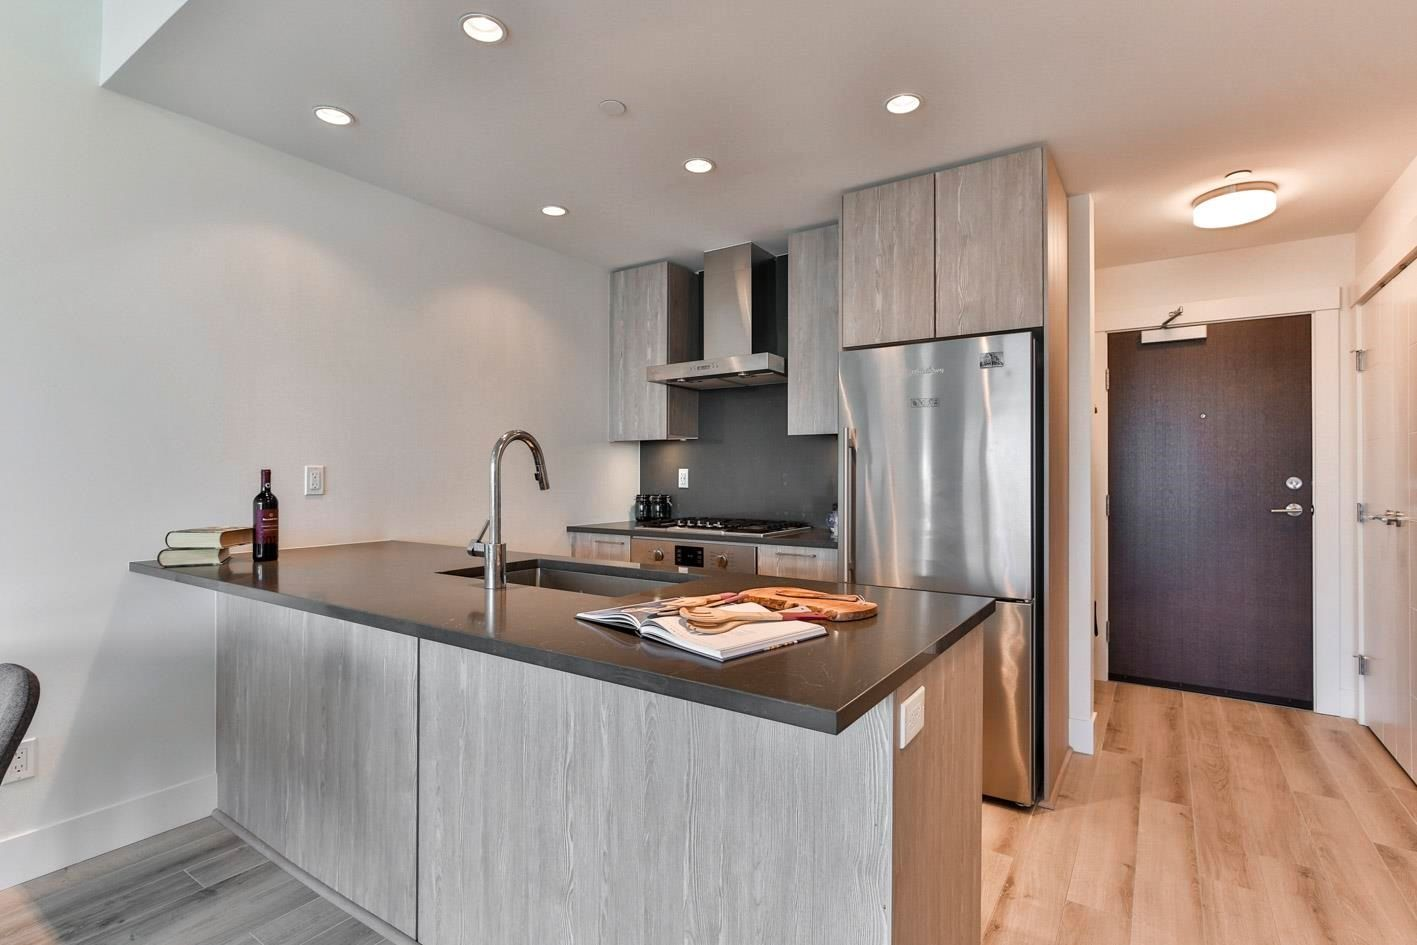 """Main Photo: 510 10788 NO. 5 Road in Richmond: Ironwood Condo for sale in """"CALLA AT THE GARDENS"""" : MLS®# R2593929"""